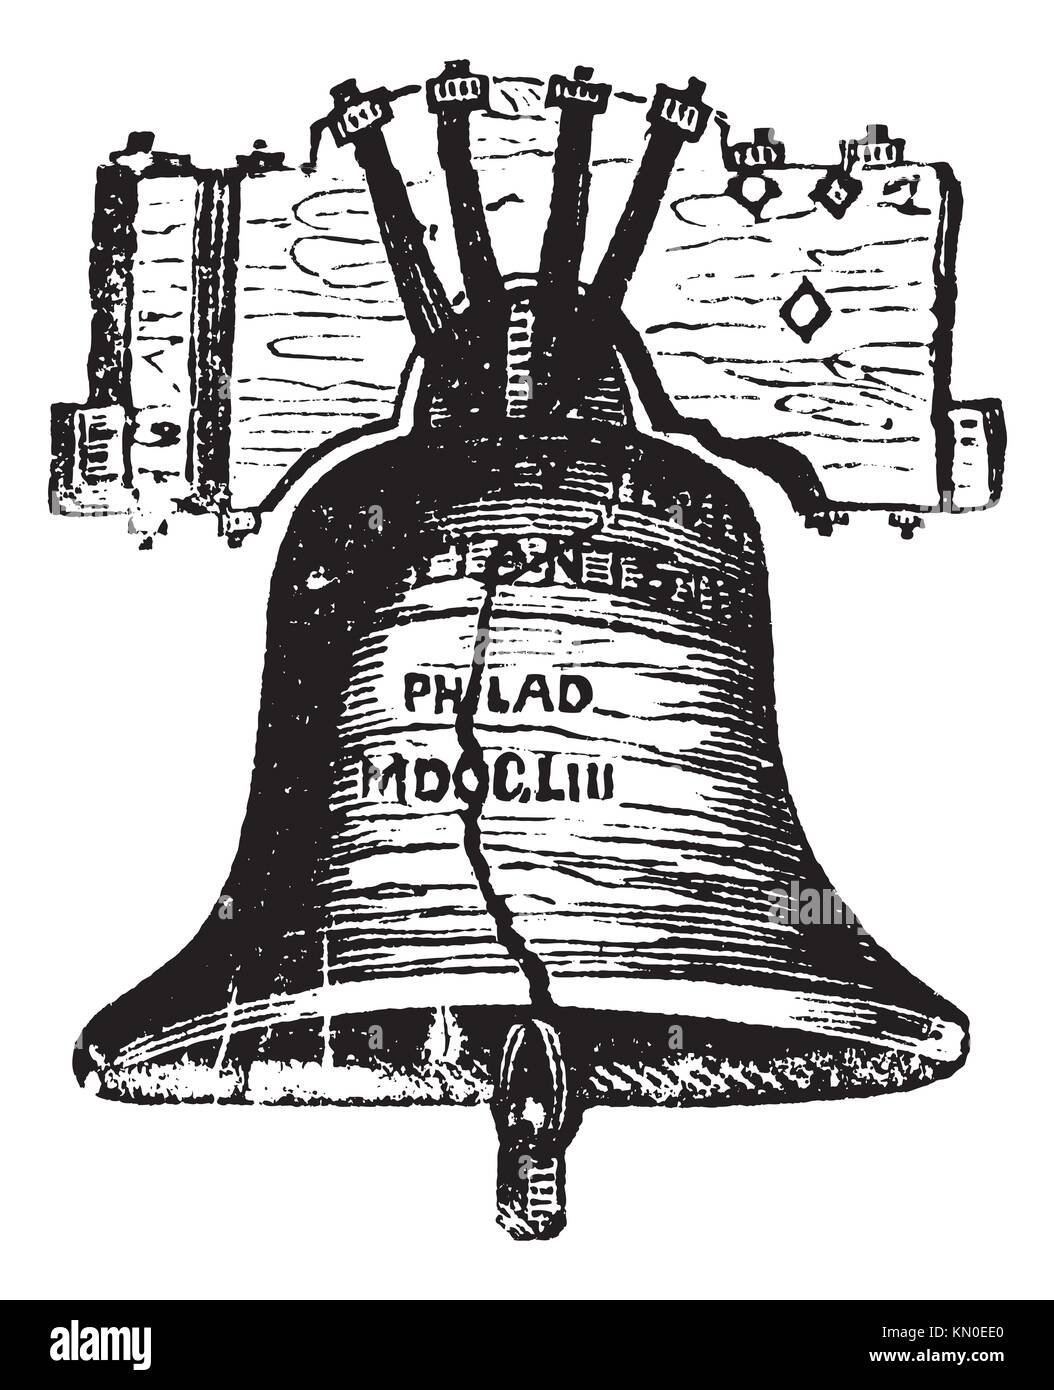 Liberty bell in philadelphia pennsylvania usa vintage liberty bell in philadelphia pennsylvania usa vintage engraving old engraved illustration of the liberty bell showing crack biocorpaavc Images